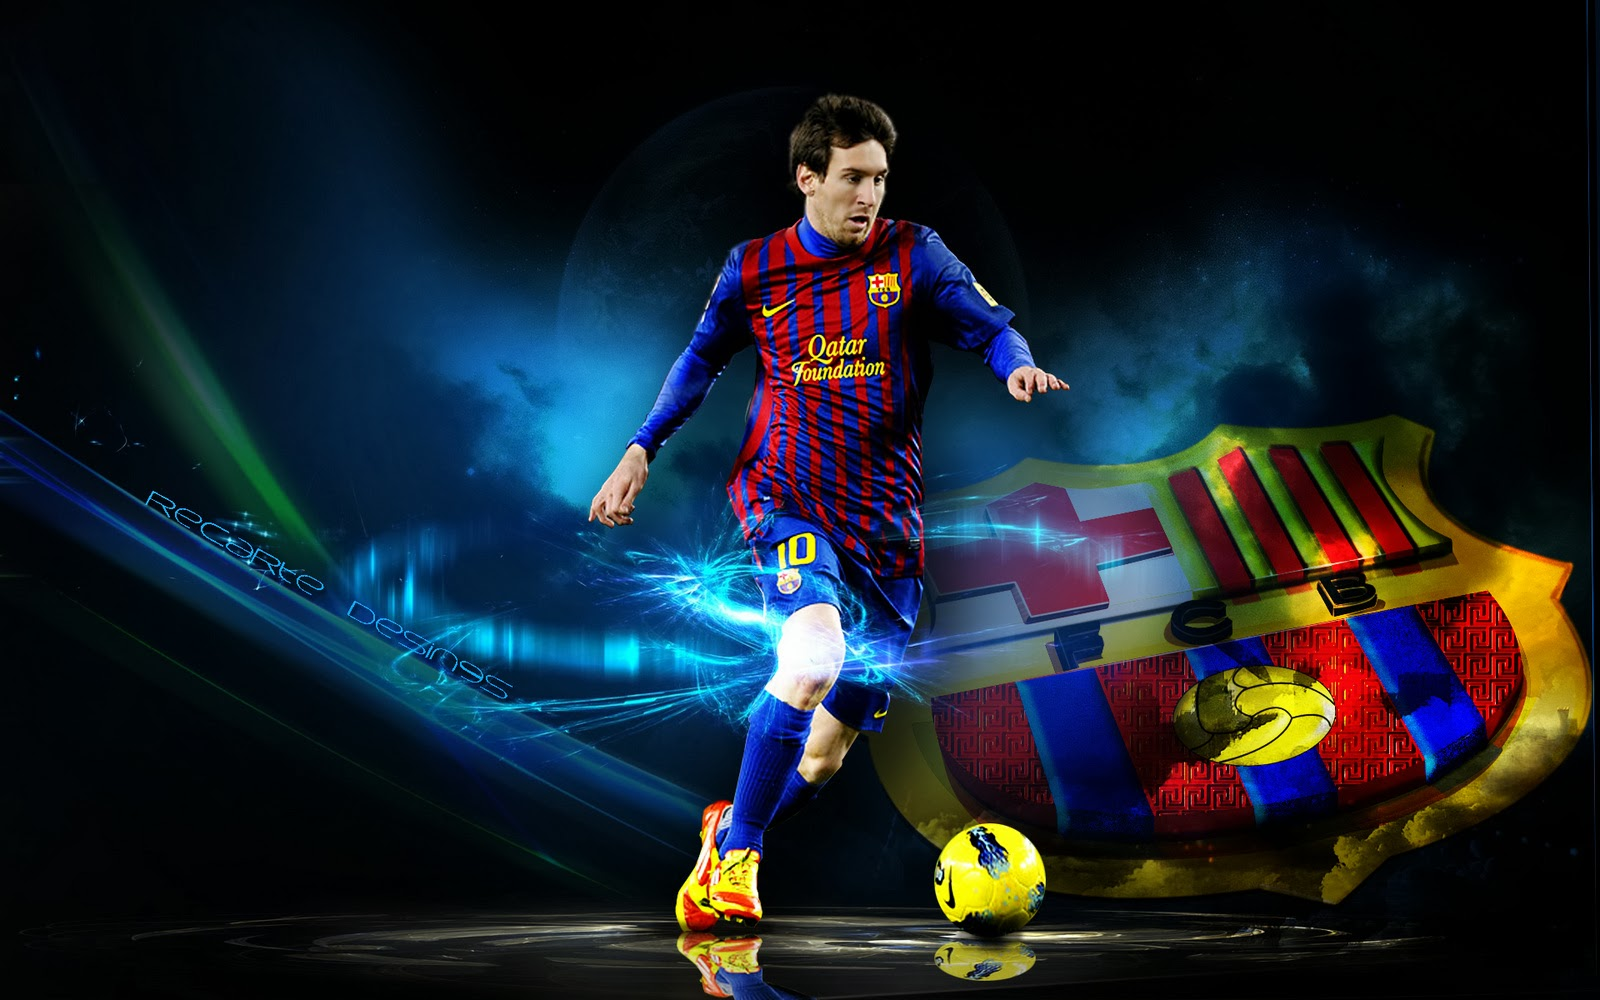 L Messi New HD Wallpapers 2013-2014